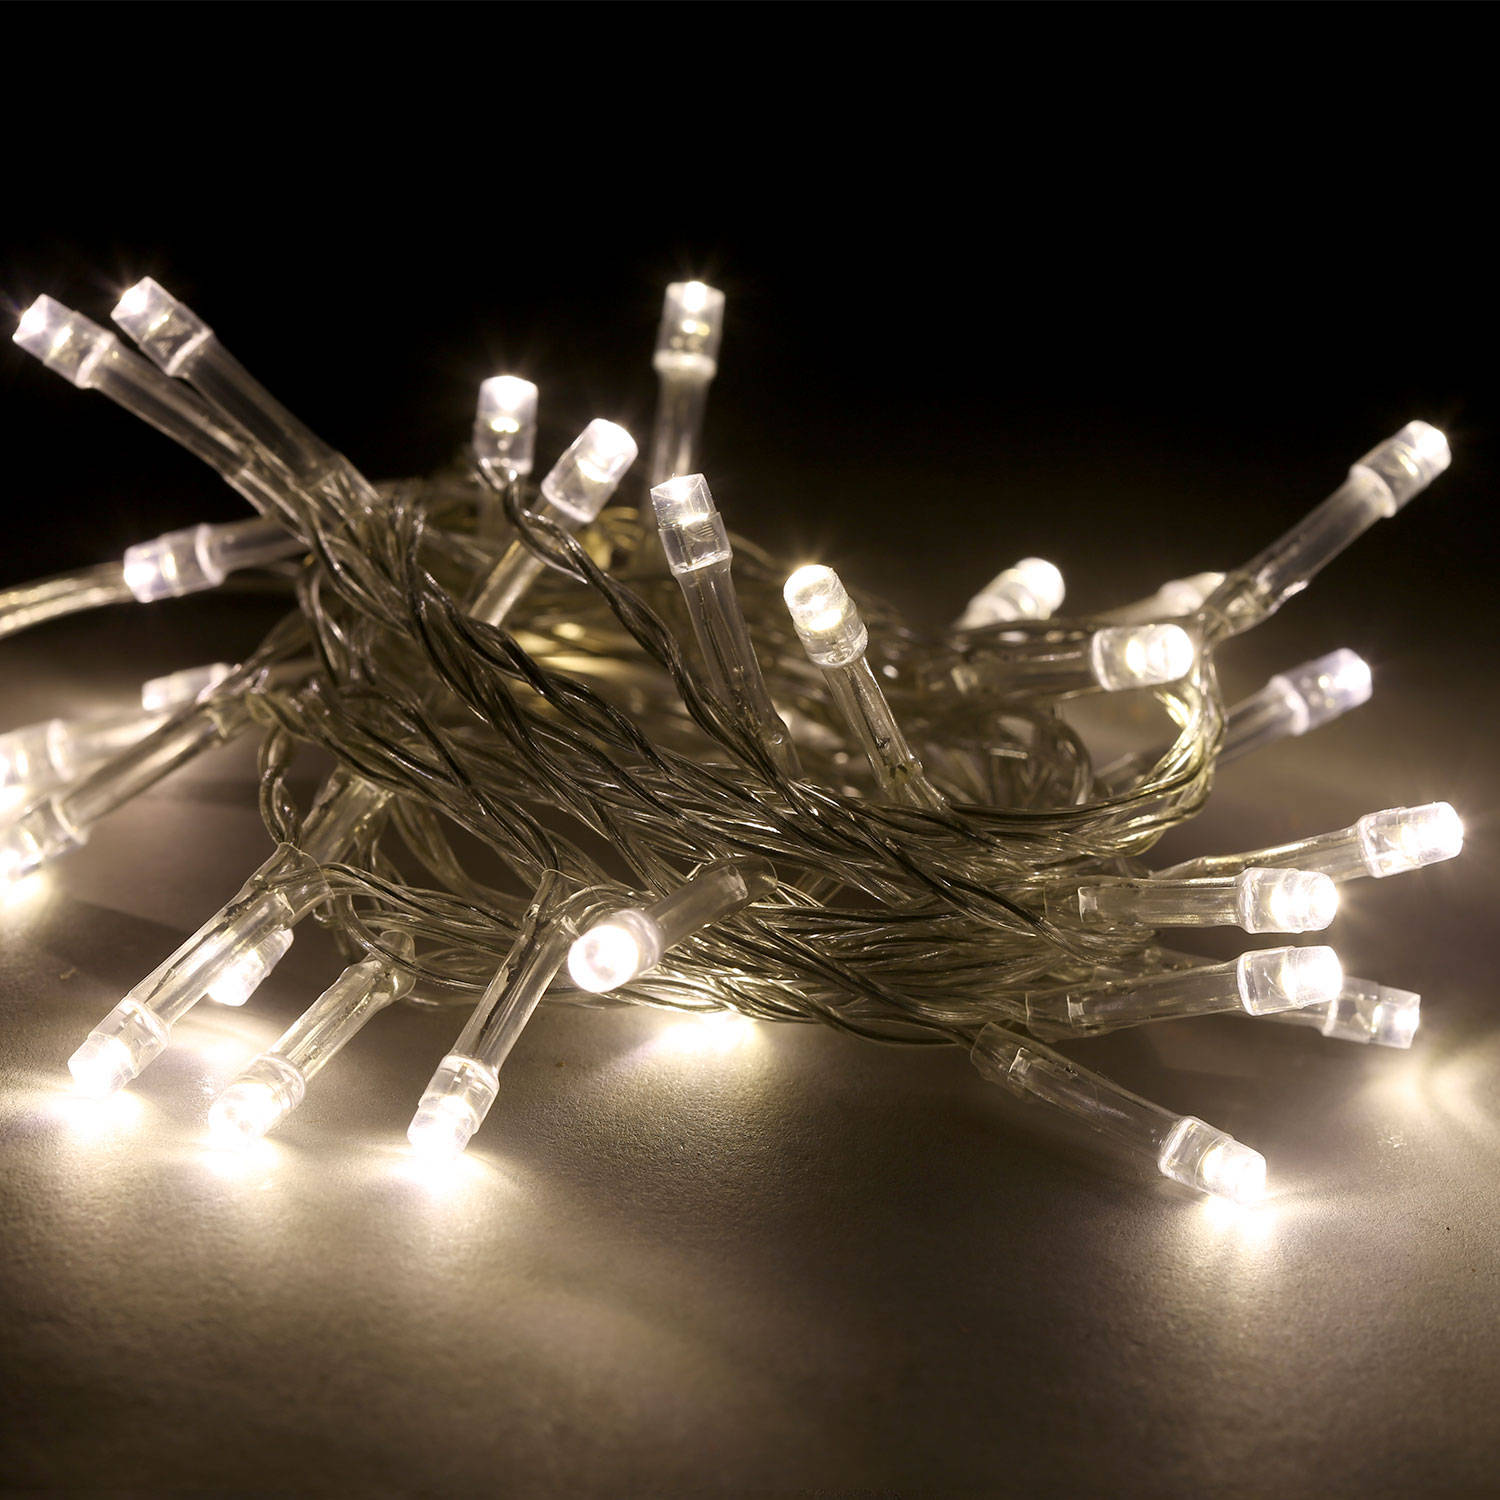 How To Make String Lights Battery Powered : Lights.com String Lights Battery String Lights Warm-White LED Battery-Powered String ...